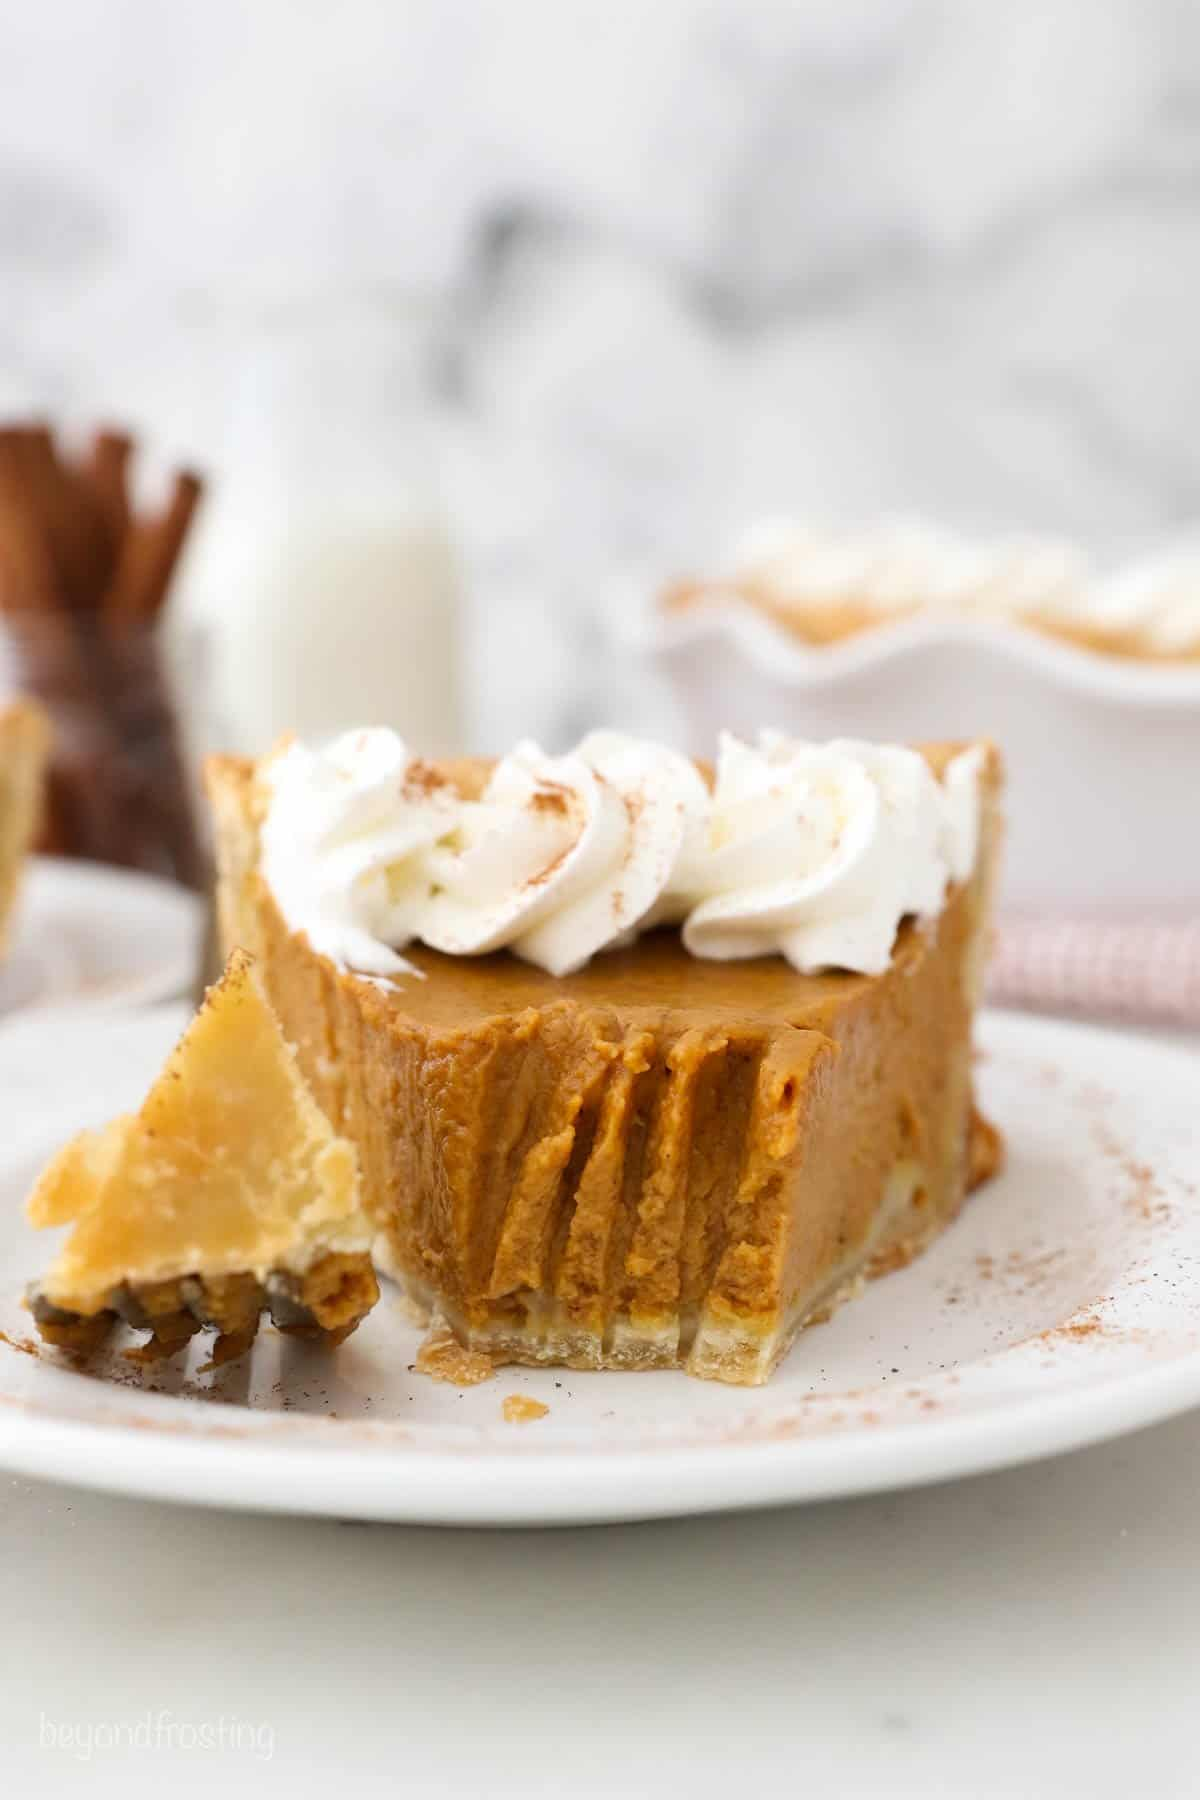 A slice of Pumpkin Pie with Homemade Whipped Cream with a piece taken out from a fork.